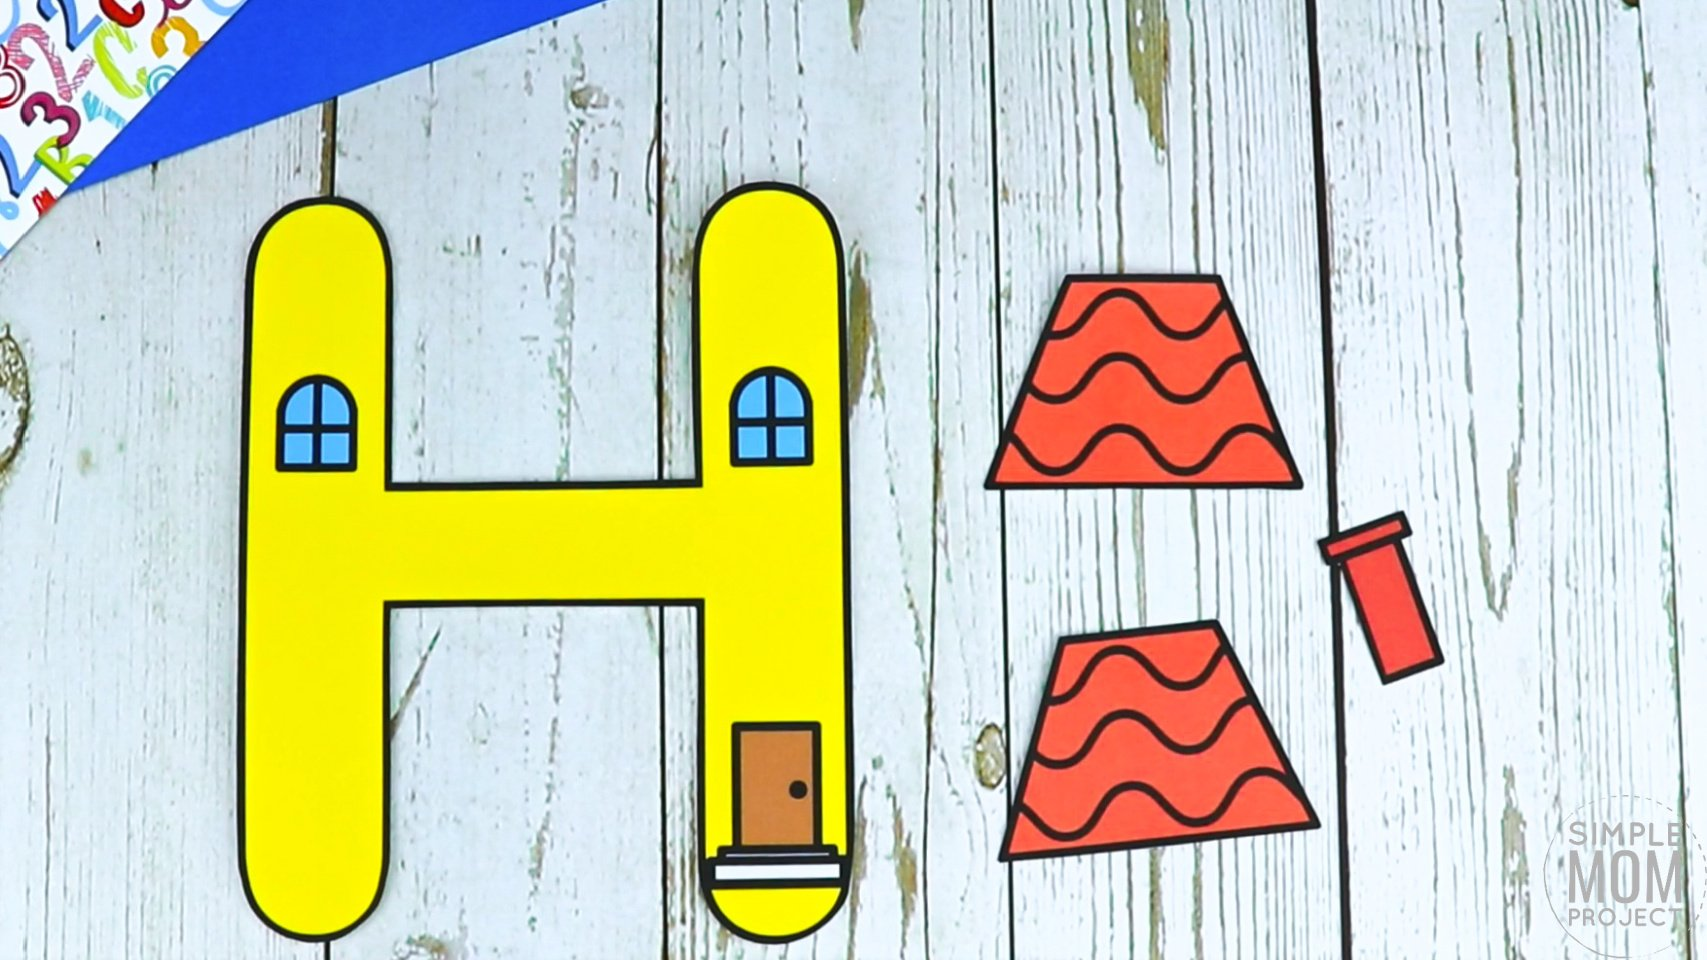 H is for House Printable Craft Letter H Craft for Kids, preschoolers, toddlers and kindergartners